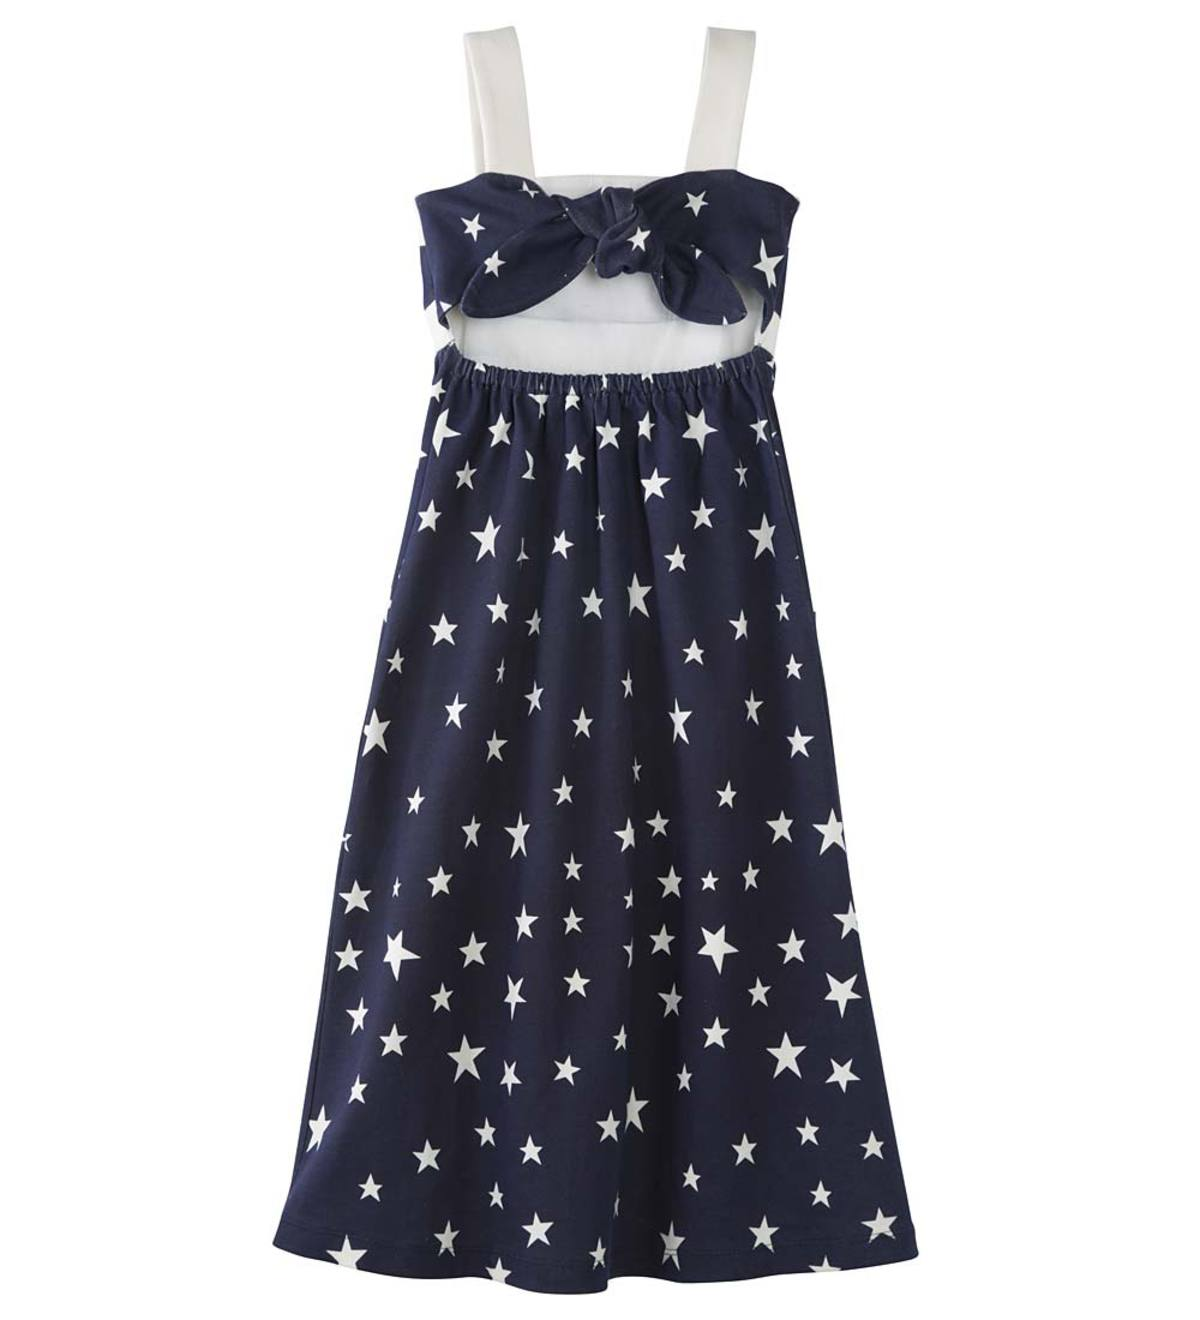 Sleeveless Star-Print Pocket Dress - NY - 3T